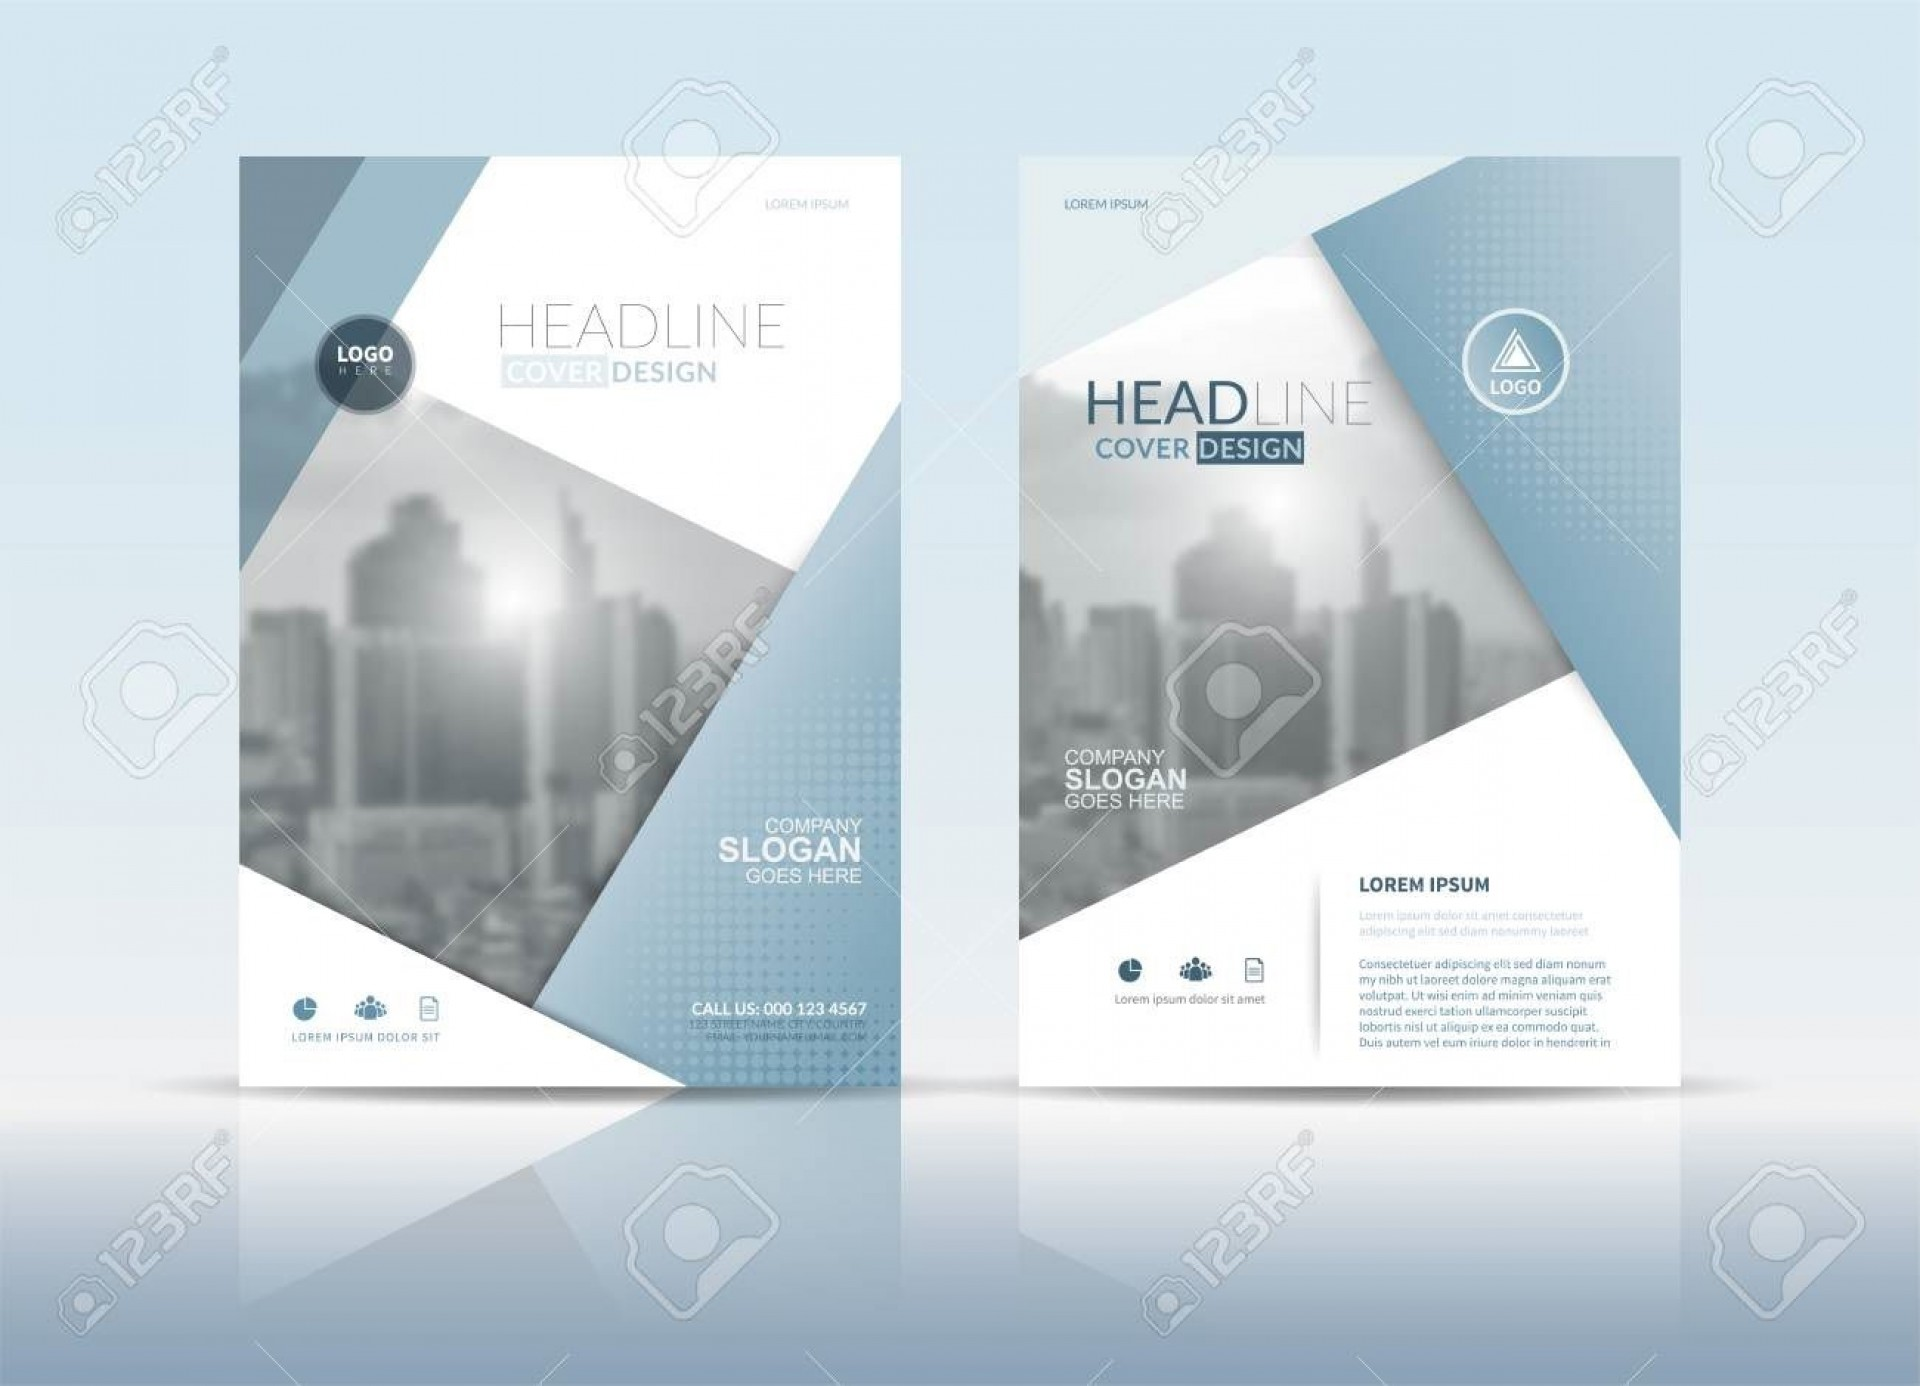 003 Dreaded Free Download Annual Report Cover Design Template Inspiration  In Word Page1920